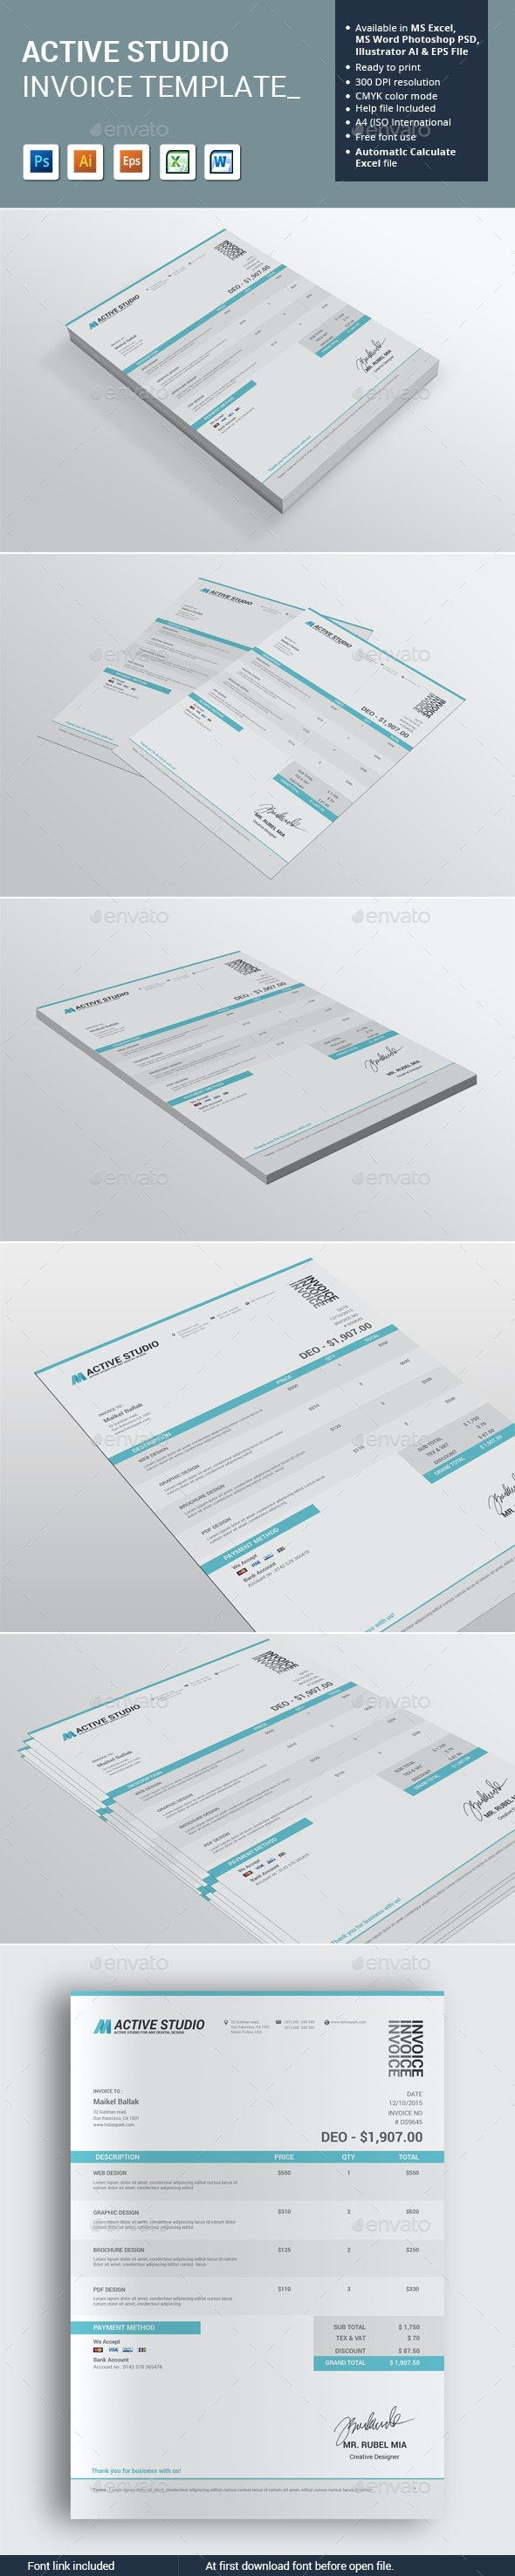 Active Studio Invoice Template - Proposals & Invoices Stationery